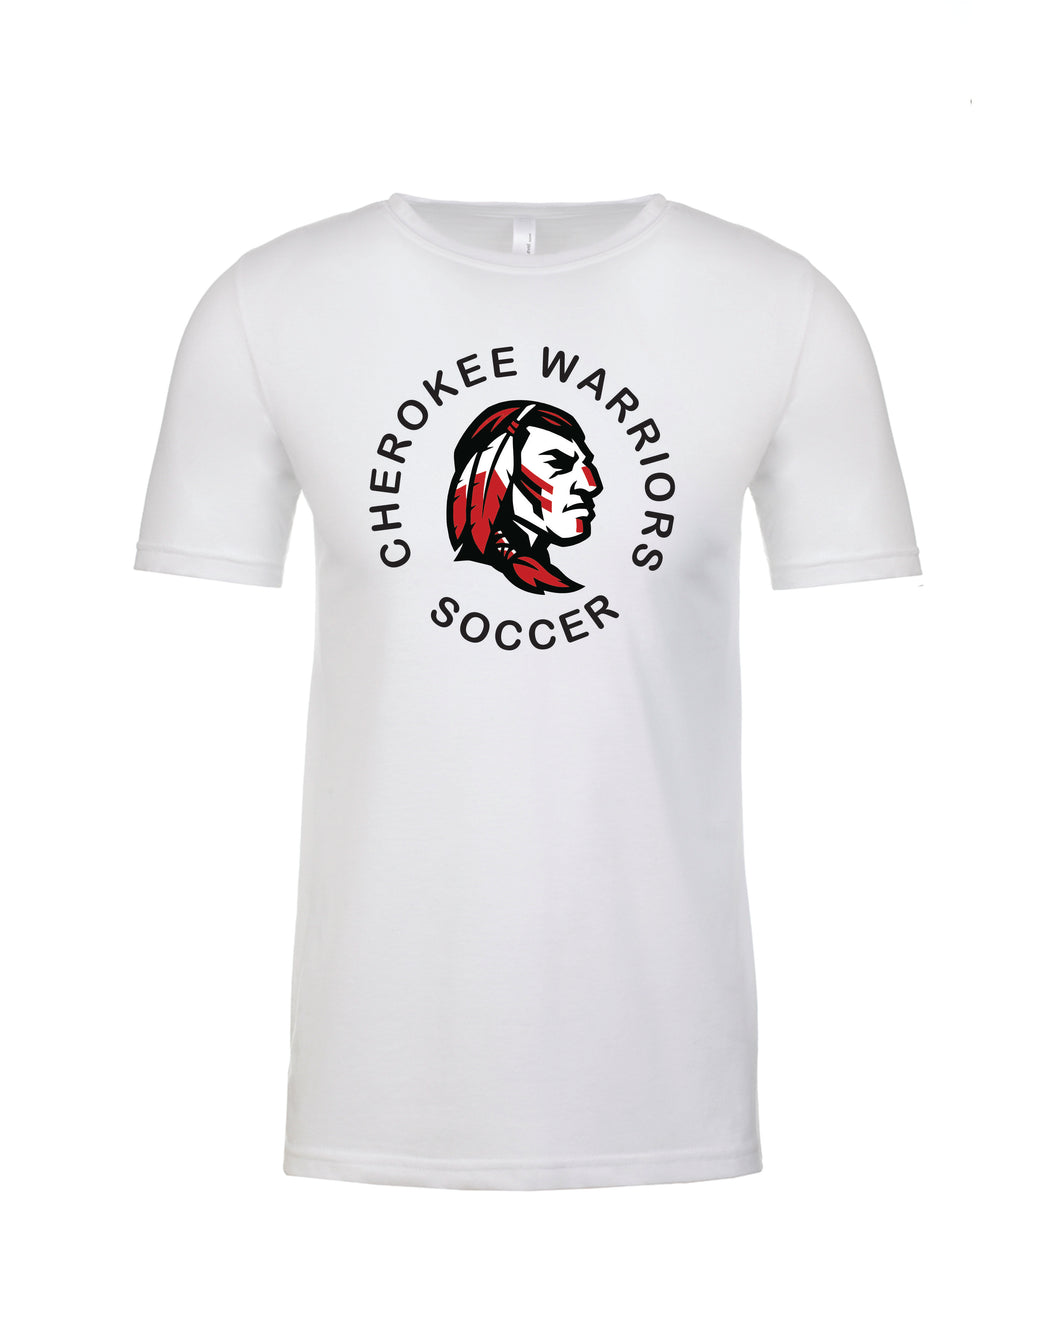 Item CHS-SOC-602-6 - Next Level CVC Crew - Cherokee Warrior Soccer Logo